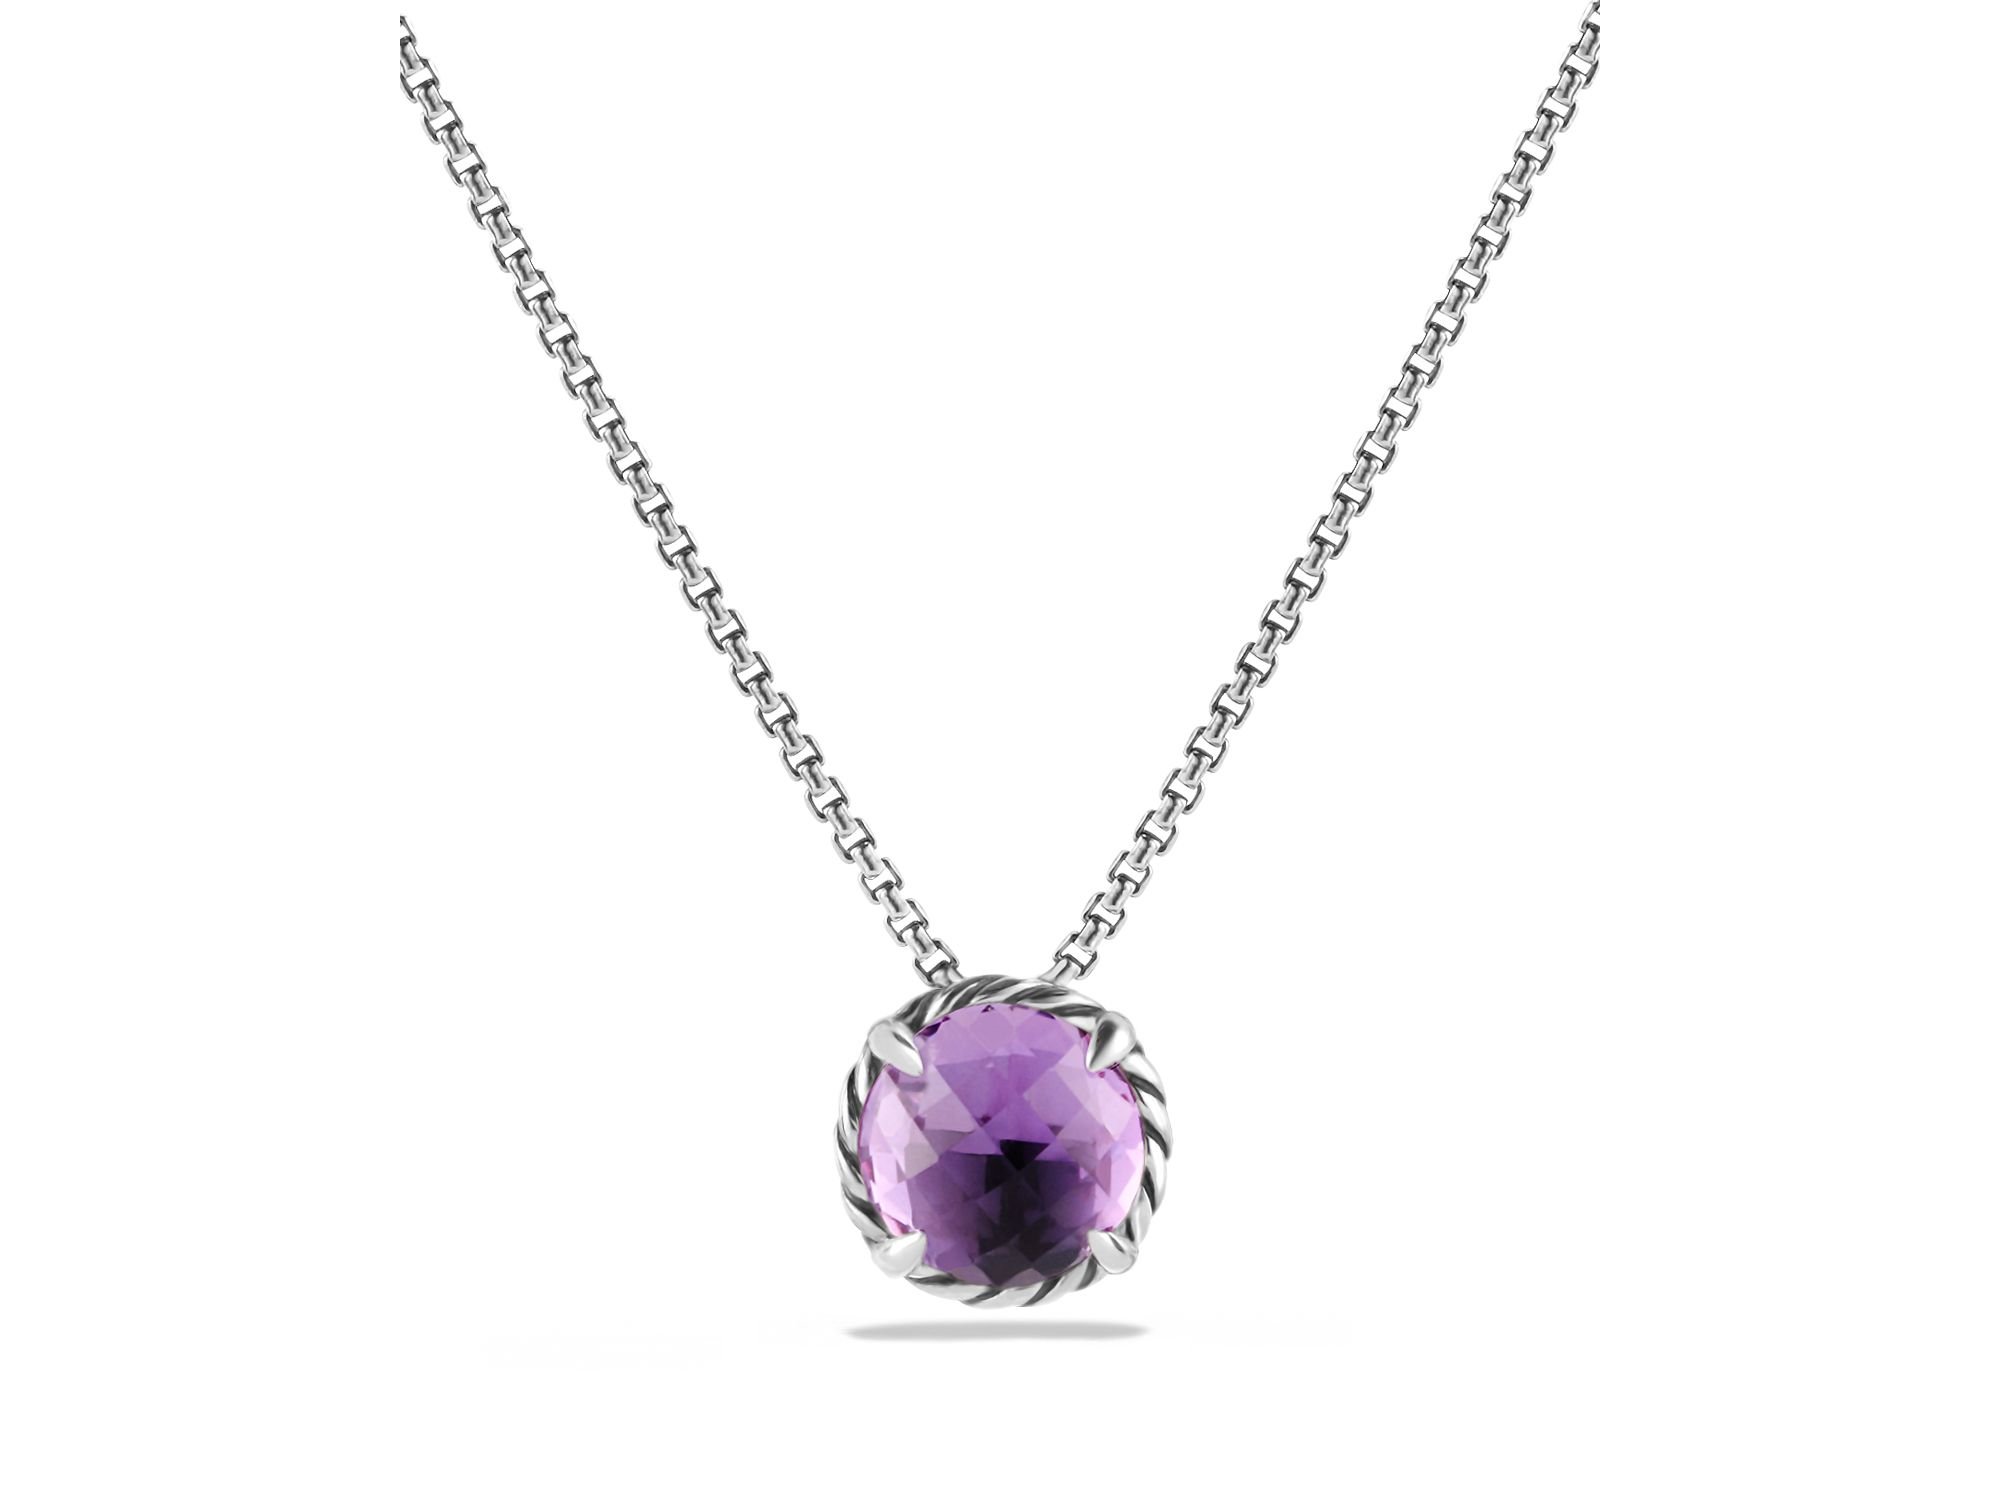 david yurman chatelaine pendant necklace with amethyst in